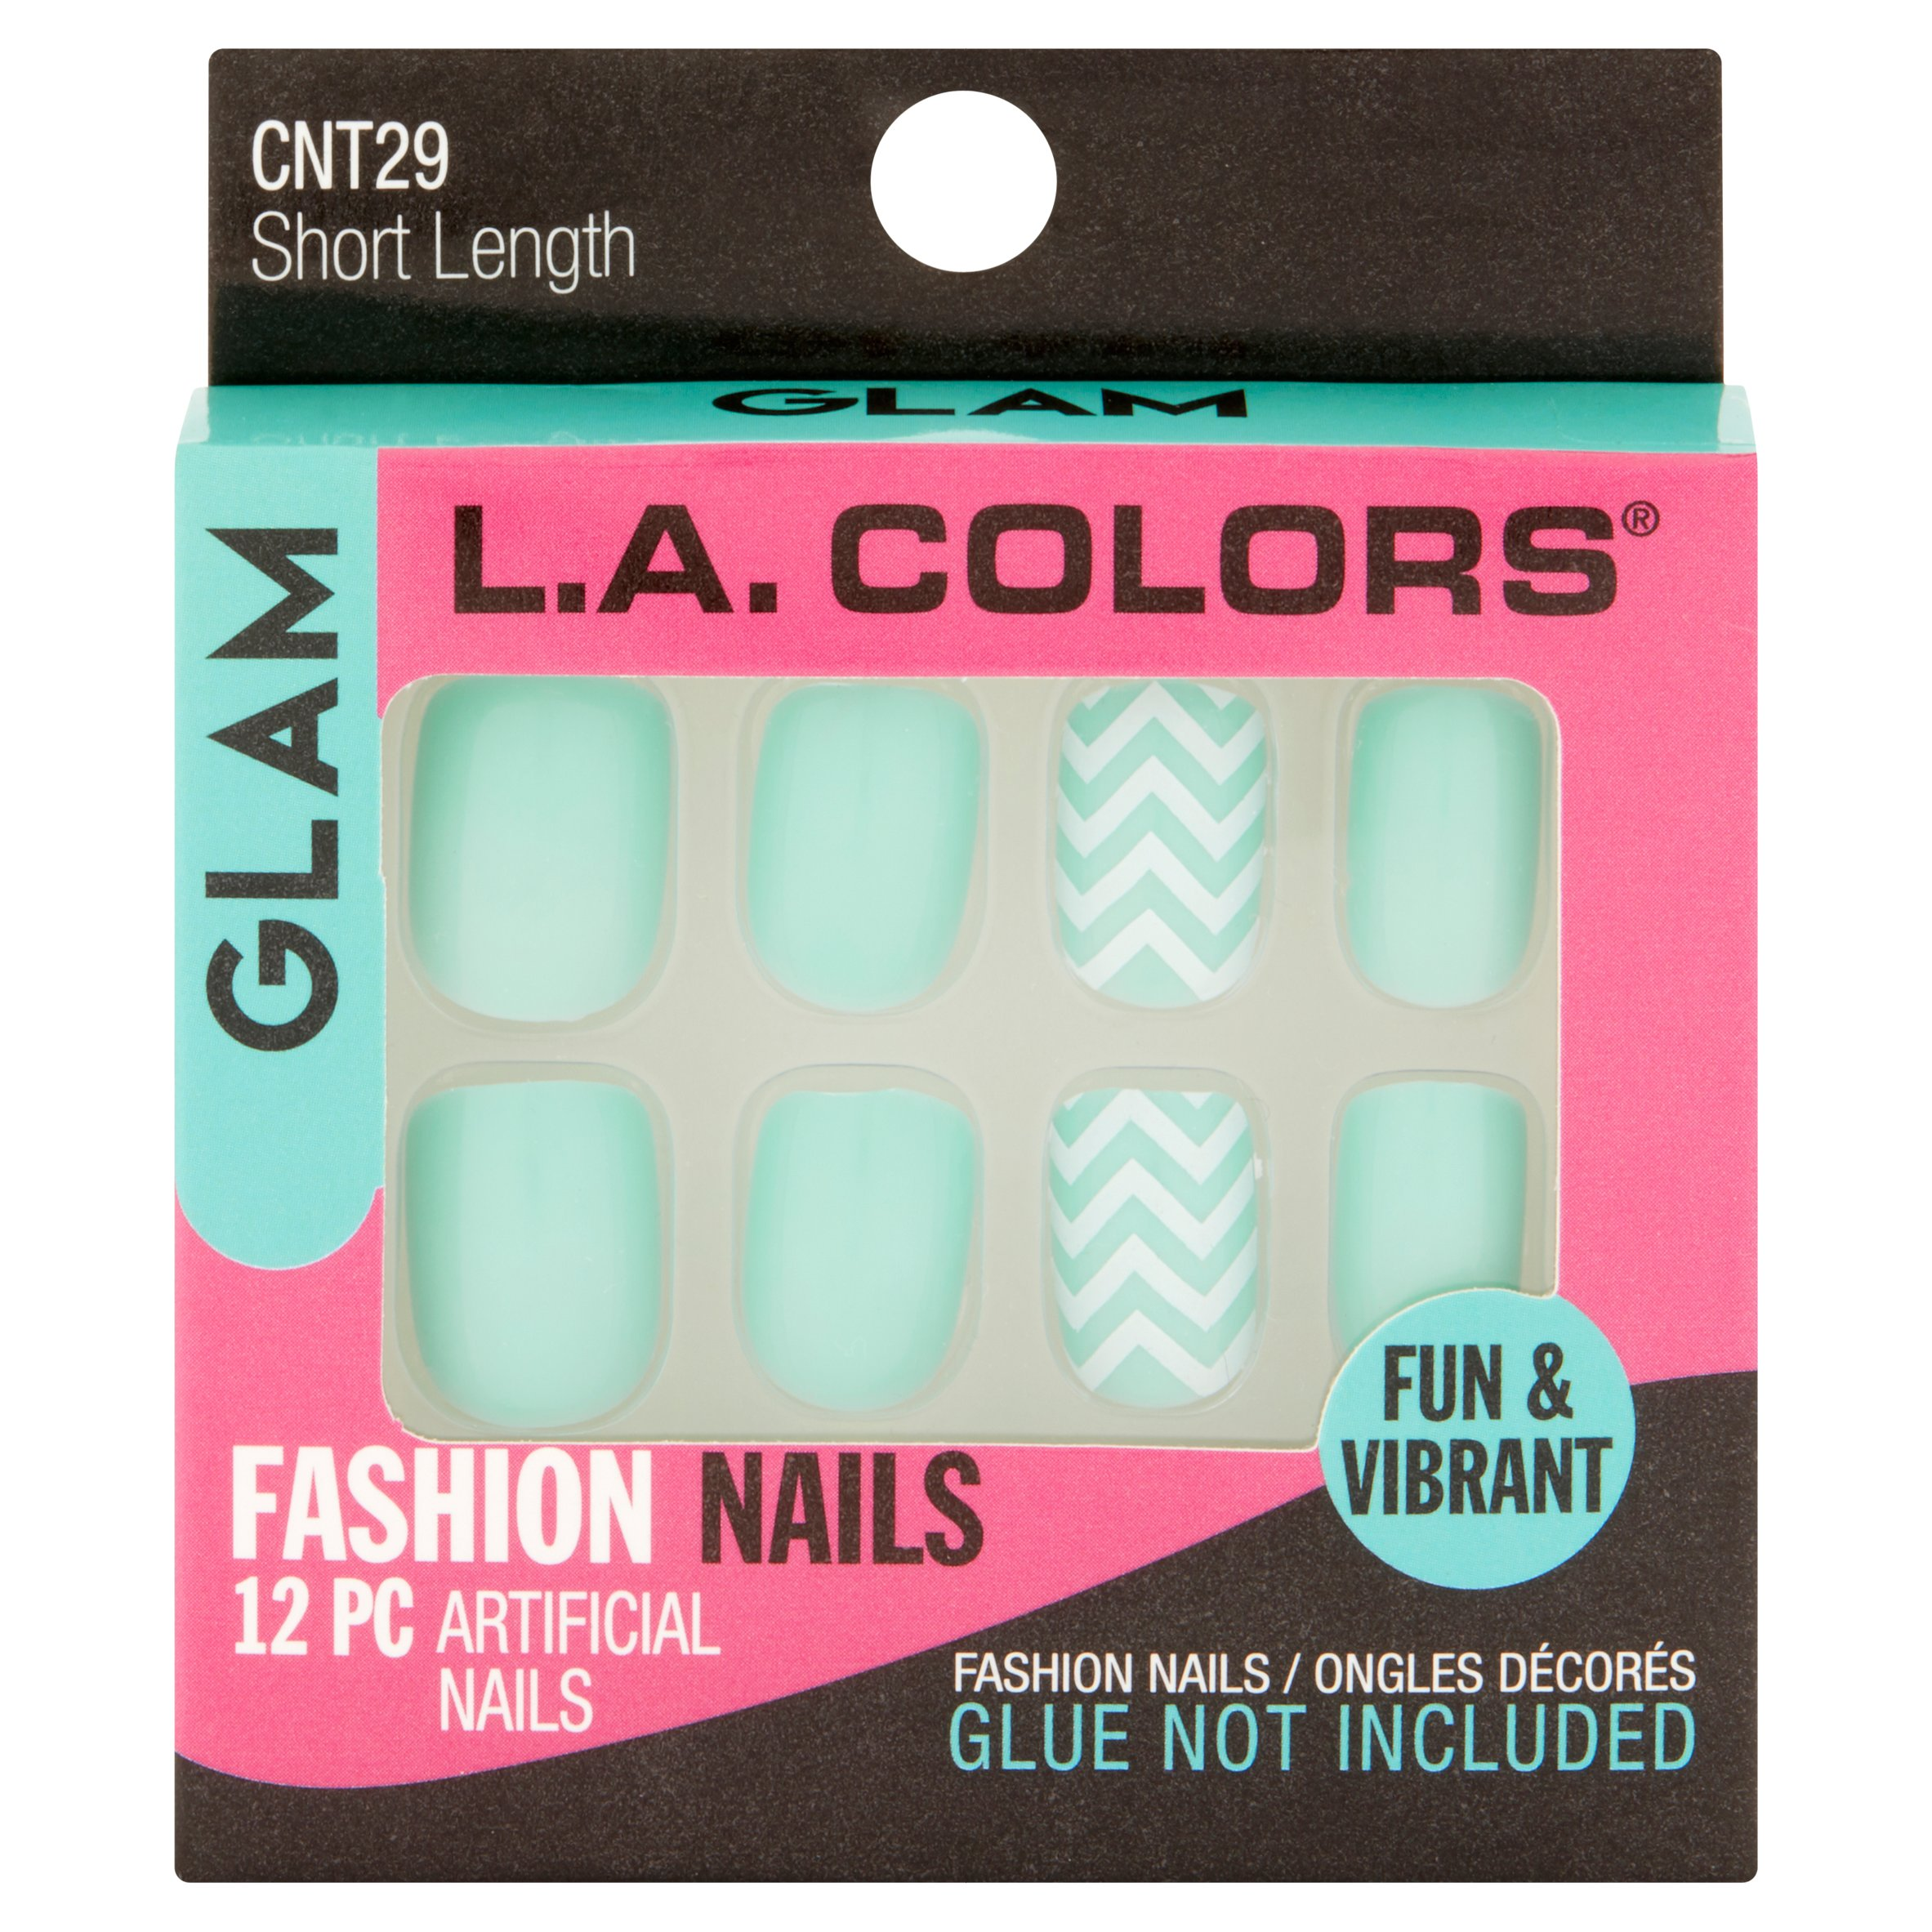 La Colors Fashion Nail Tips - Glam